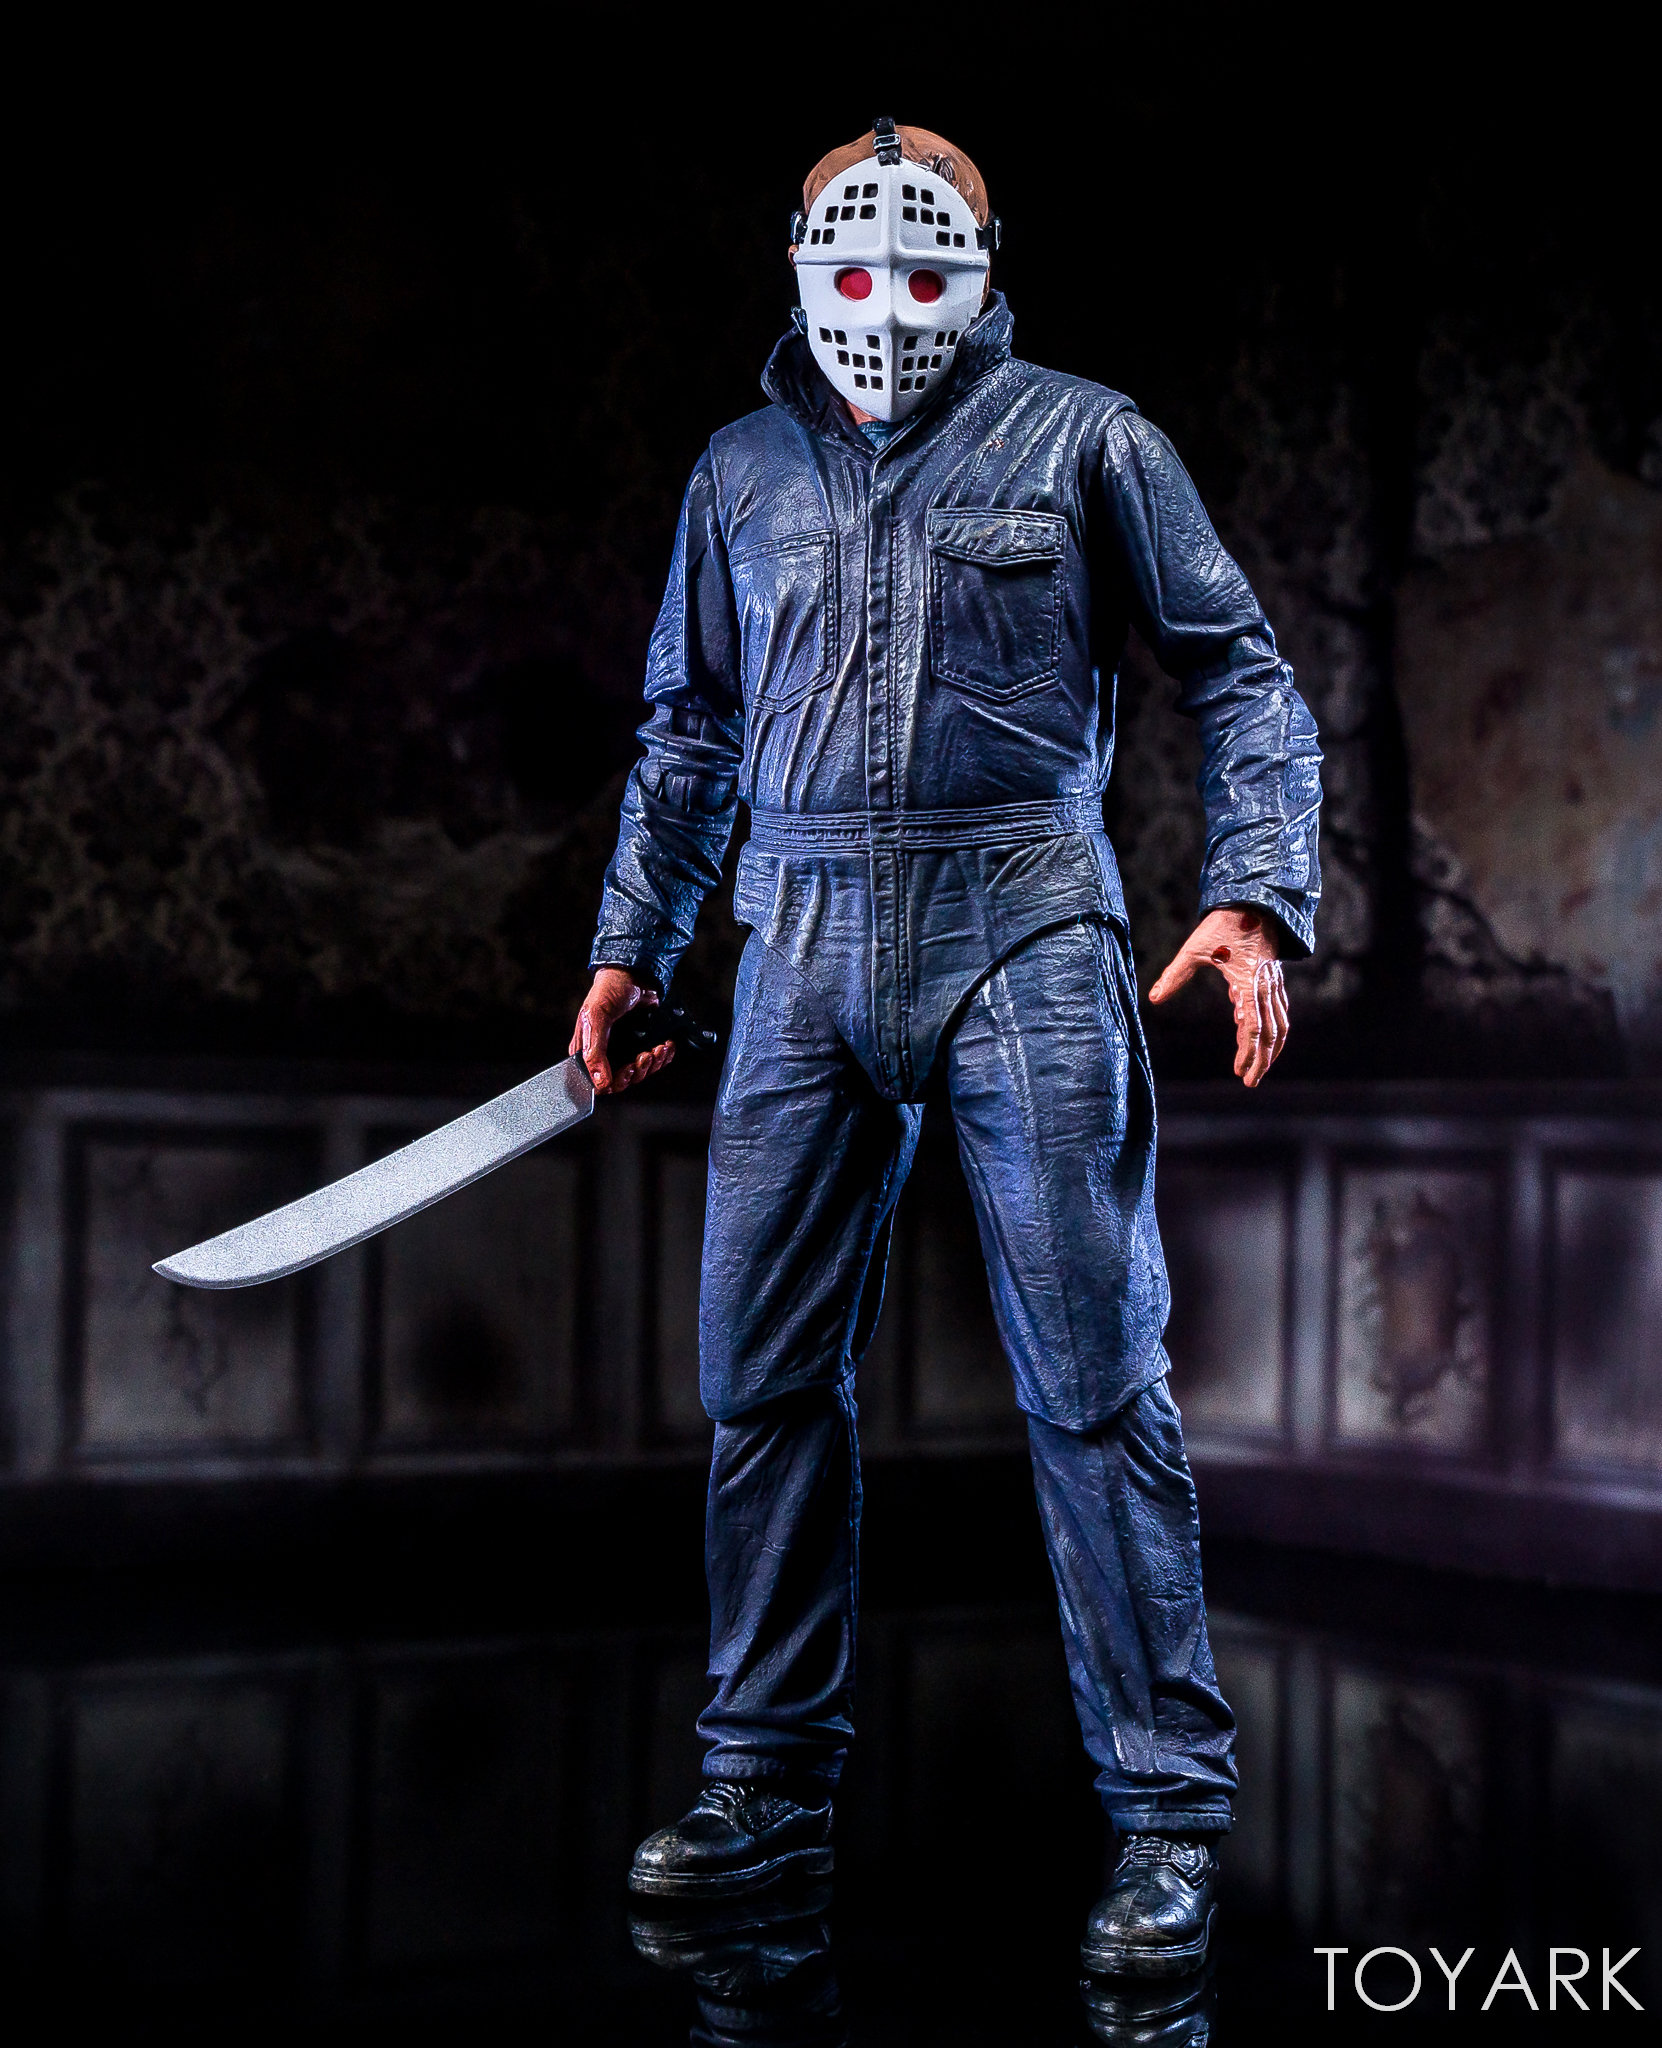 https://news.toyark.com/wp-content/uploads/sites/4/2018/11/Halloween-2018-Michael-Myers-Figure-072.jpg